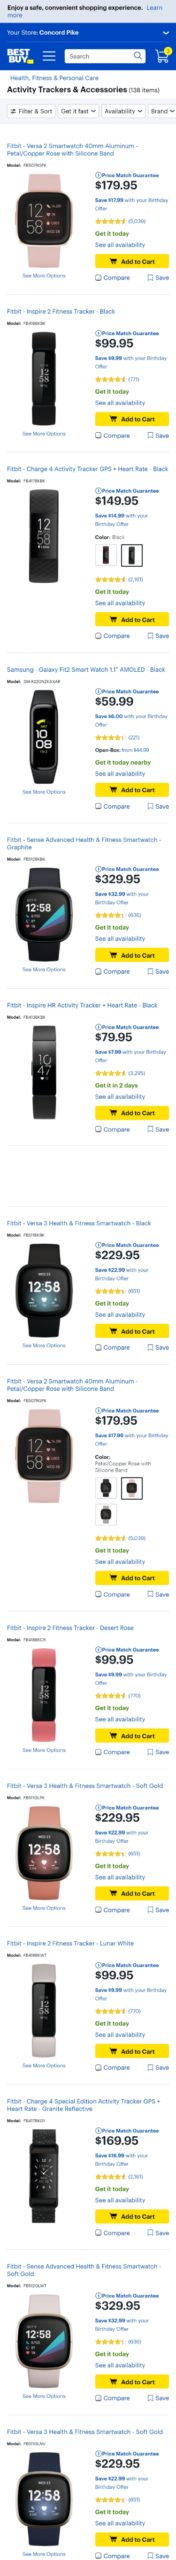 Best Buy Category Page Mobile>